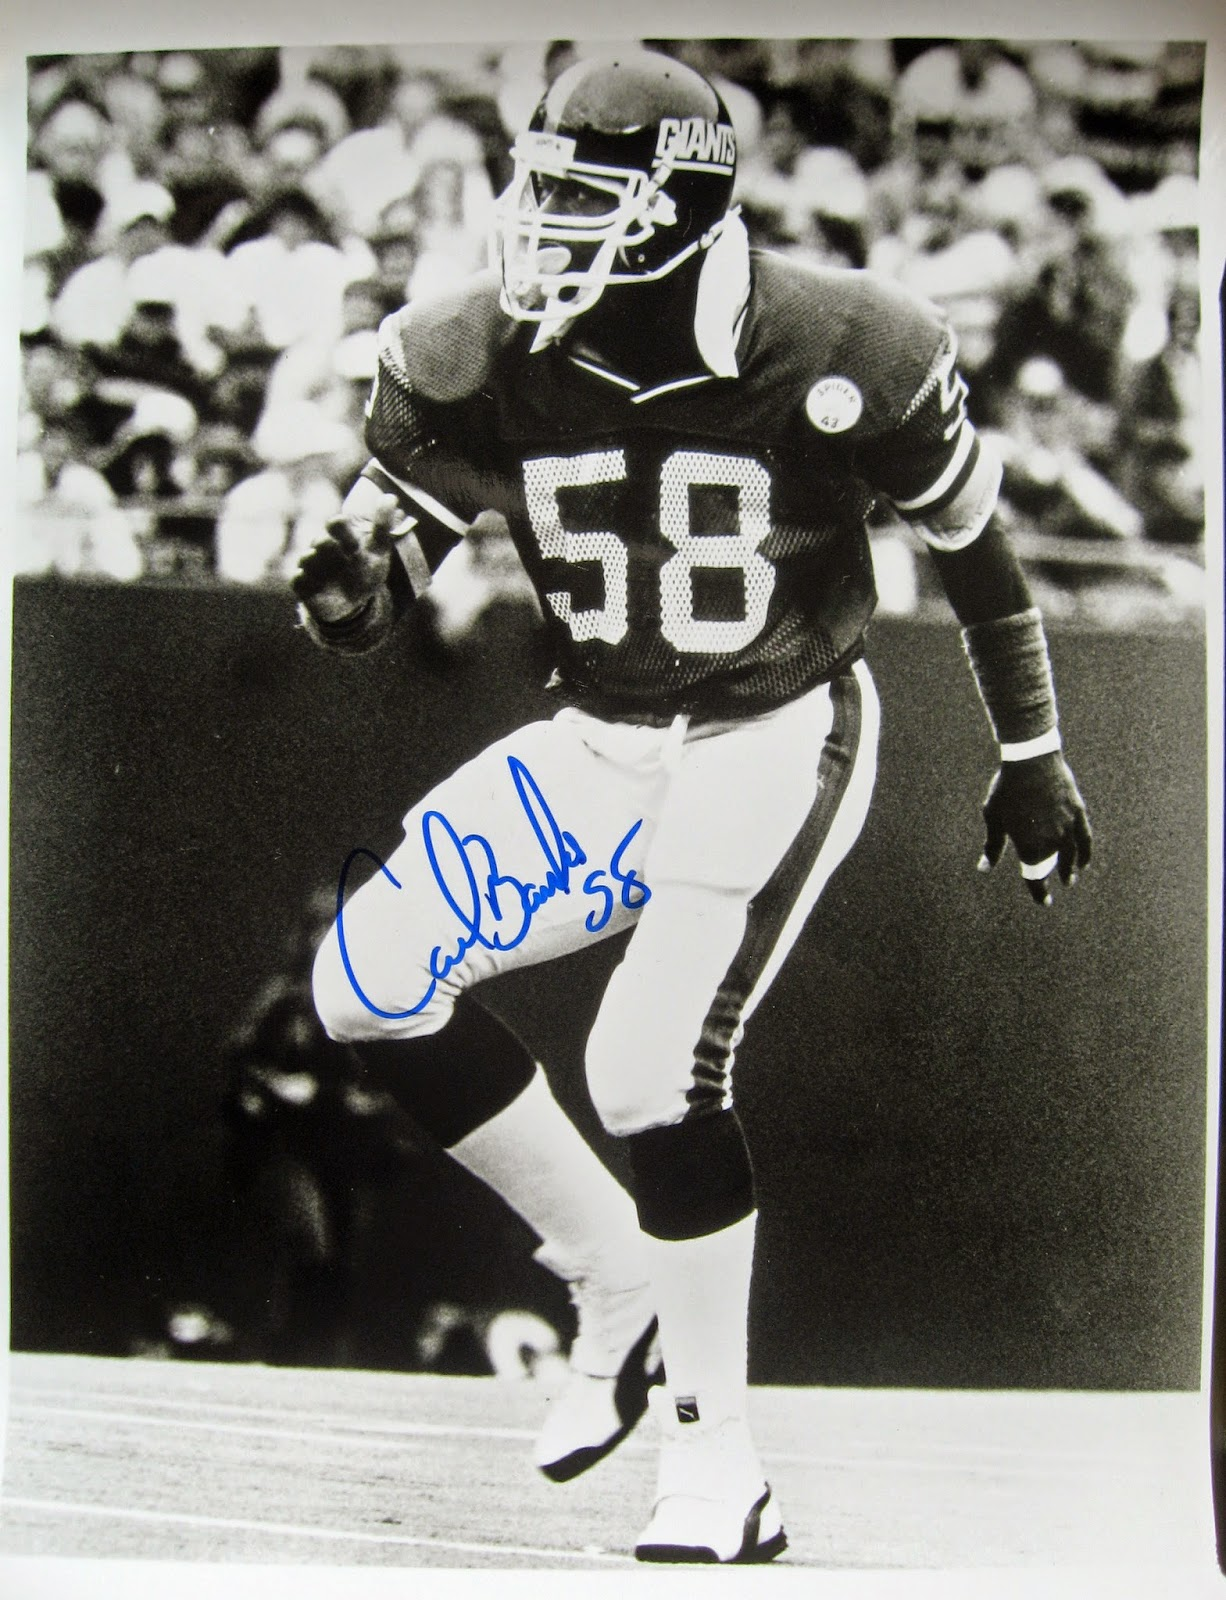 My autographed photo of Carl Banks